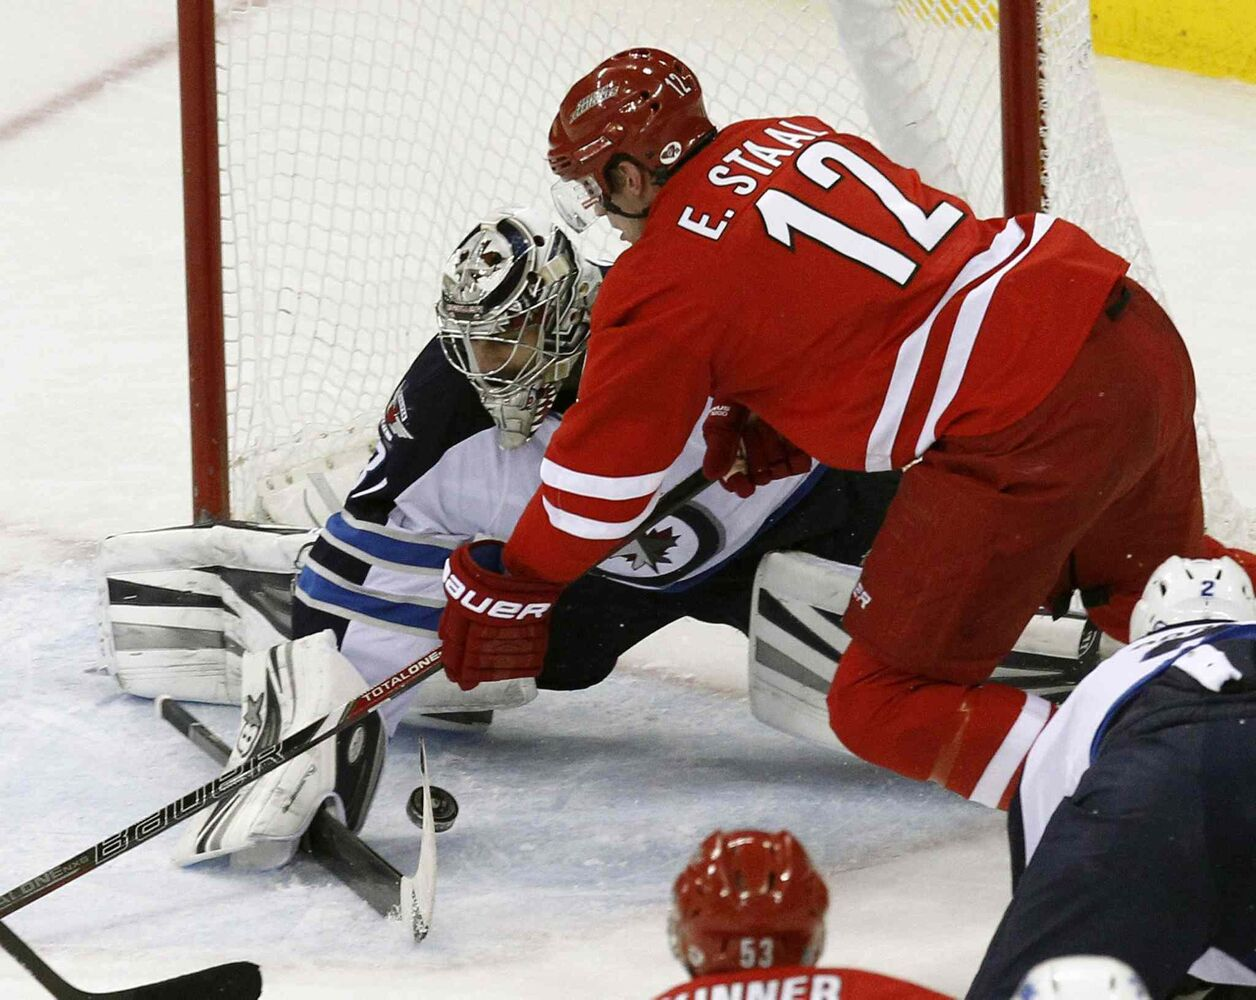 Carolina Hurricanes' Eric Staal (12) can't score against Winnipeg Jets' Ondrej Pavelec (31) during the second period at the PNC Arena in Raleigh, N.C., on Tuesday. (Chris Seward / Raleigh News & Observer/ Tribune Media MCT)